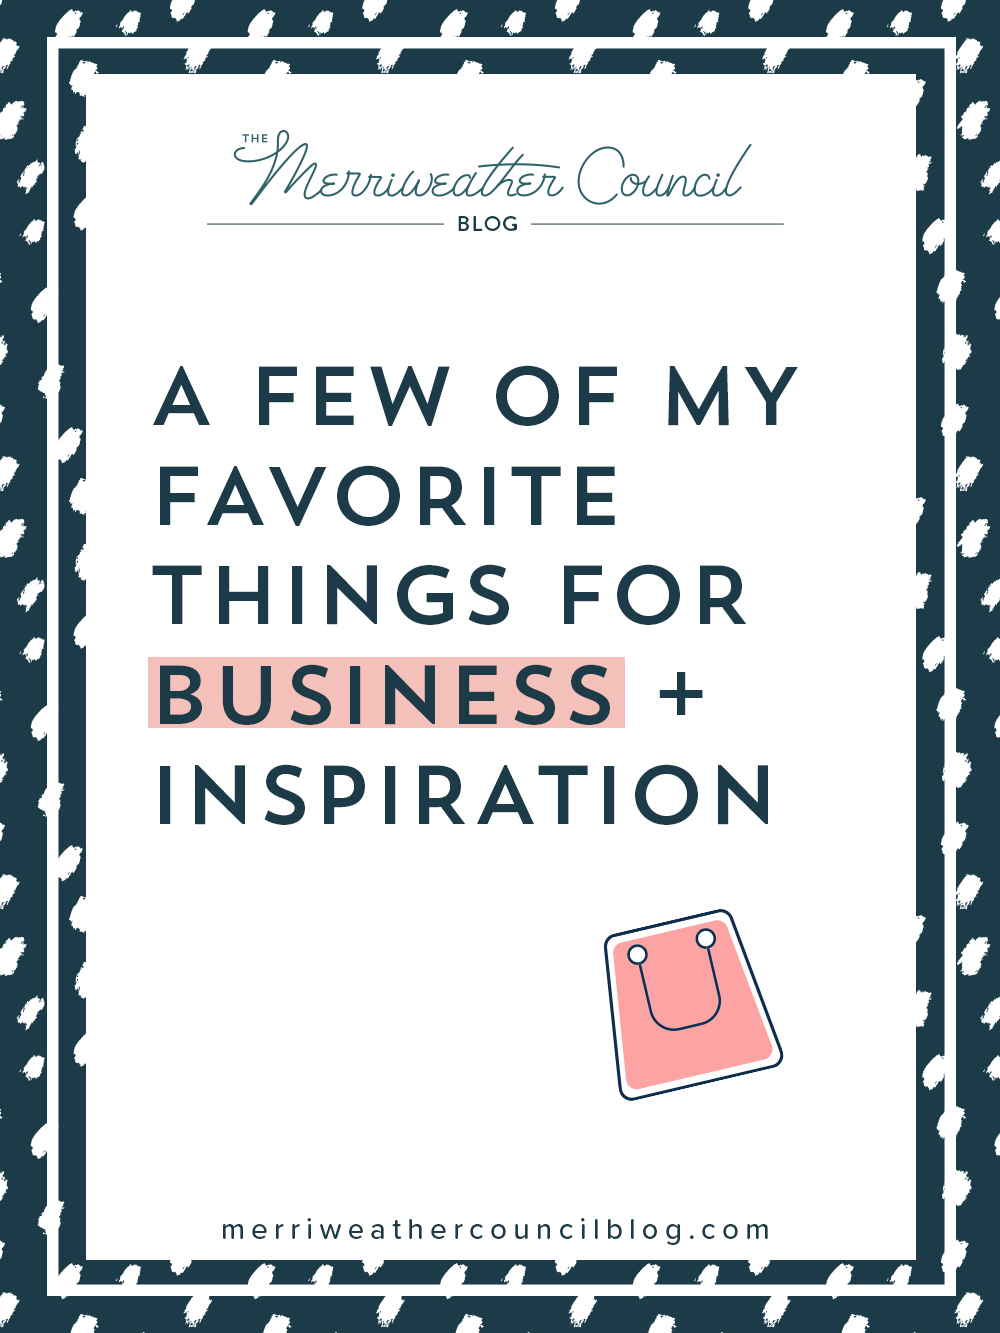 a few of my favorite things for business + inspiration | the merriweather council blog